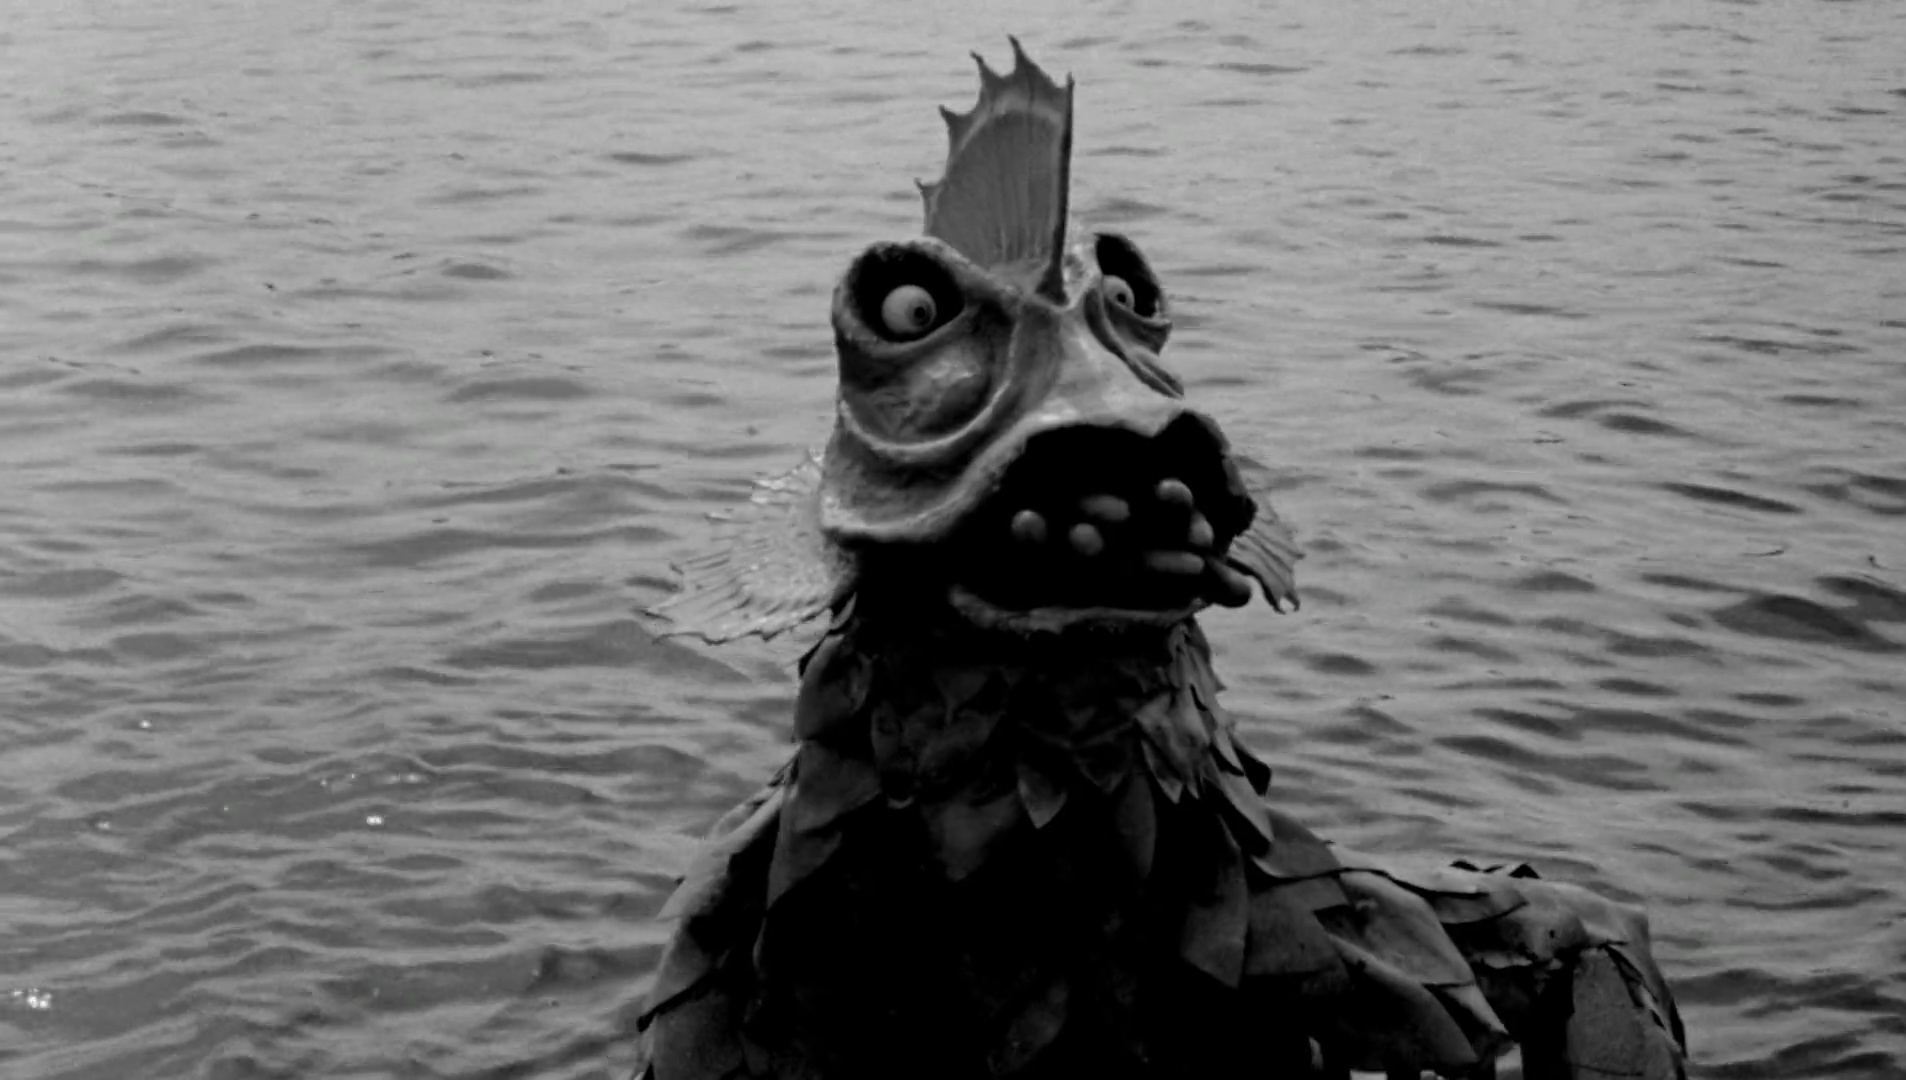 The mutant monsters in The Horror of Party Beach (1964)